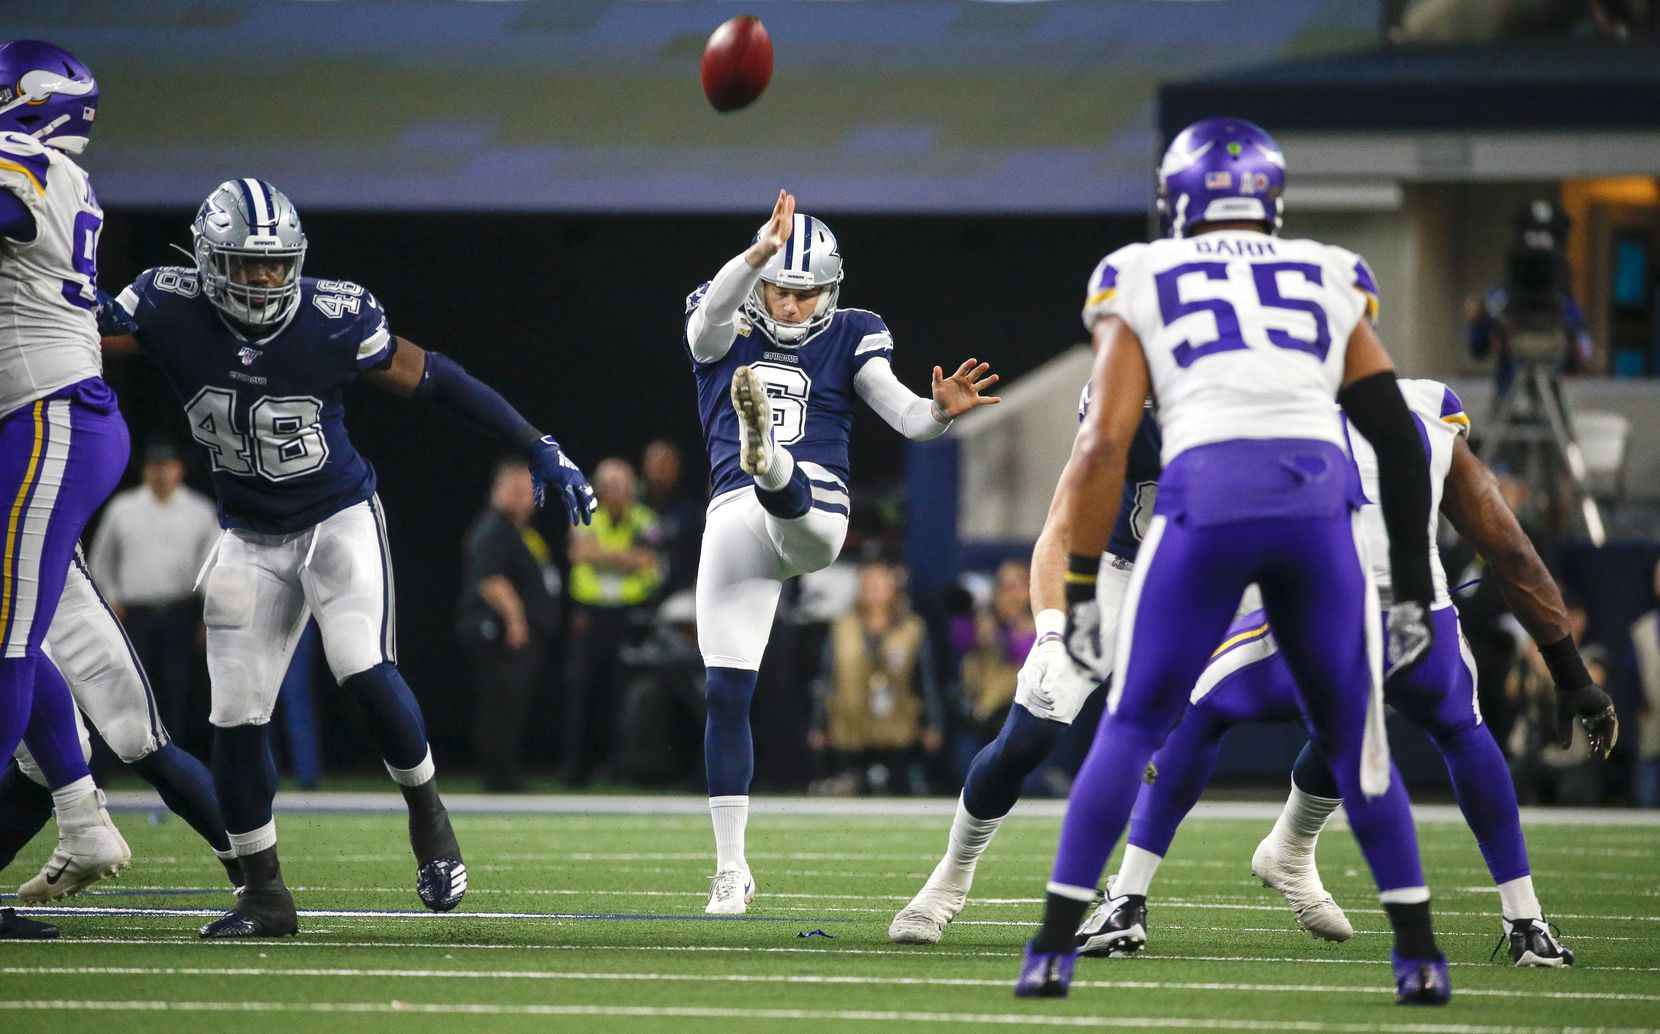 FILE - The Cowboys' Chris Jones (6) punts the ball during the first quarter of a game against the Minnesota Vikings at AT&T Stadium in Arlington on Sunday, Nov. 10, 2019.